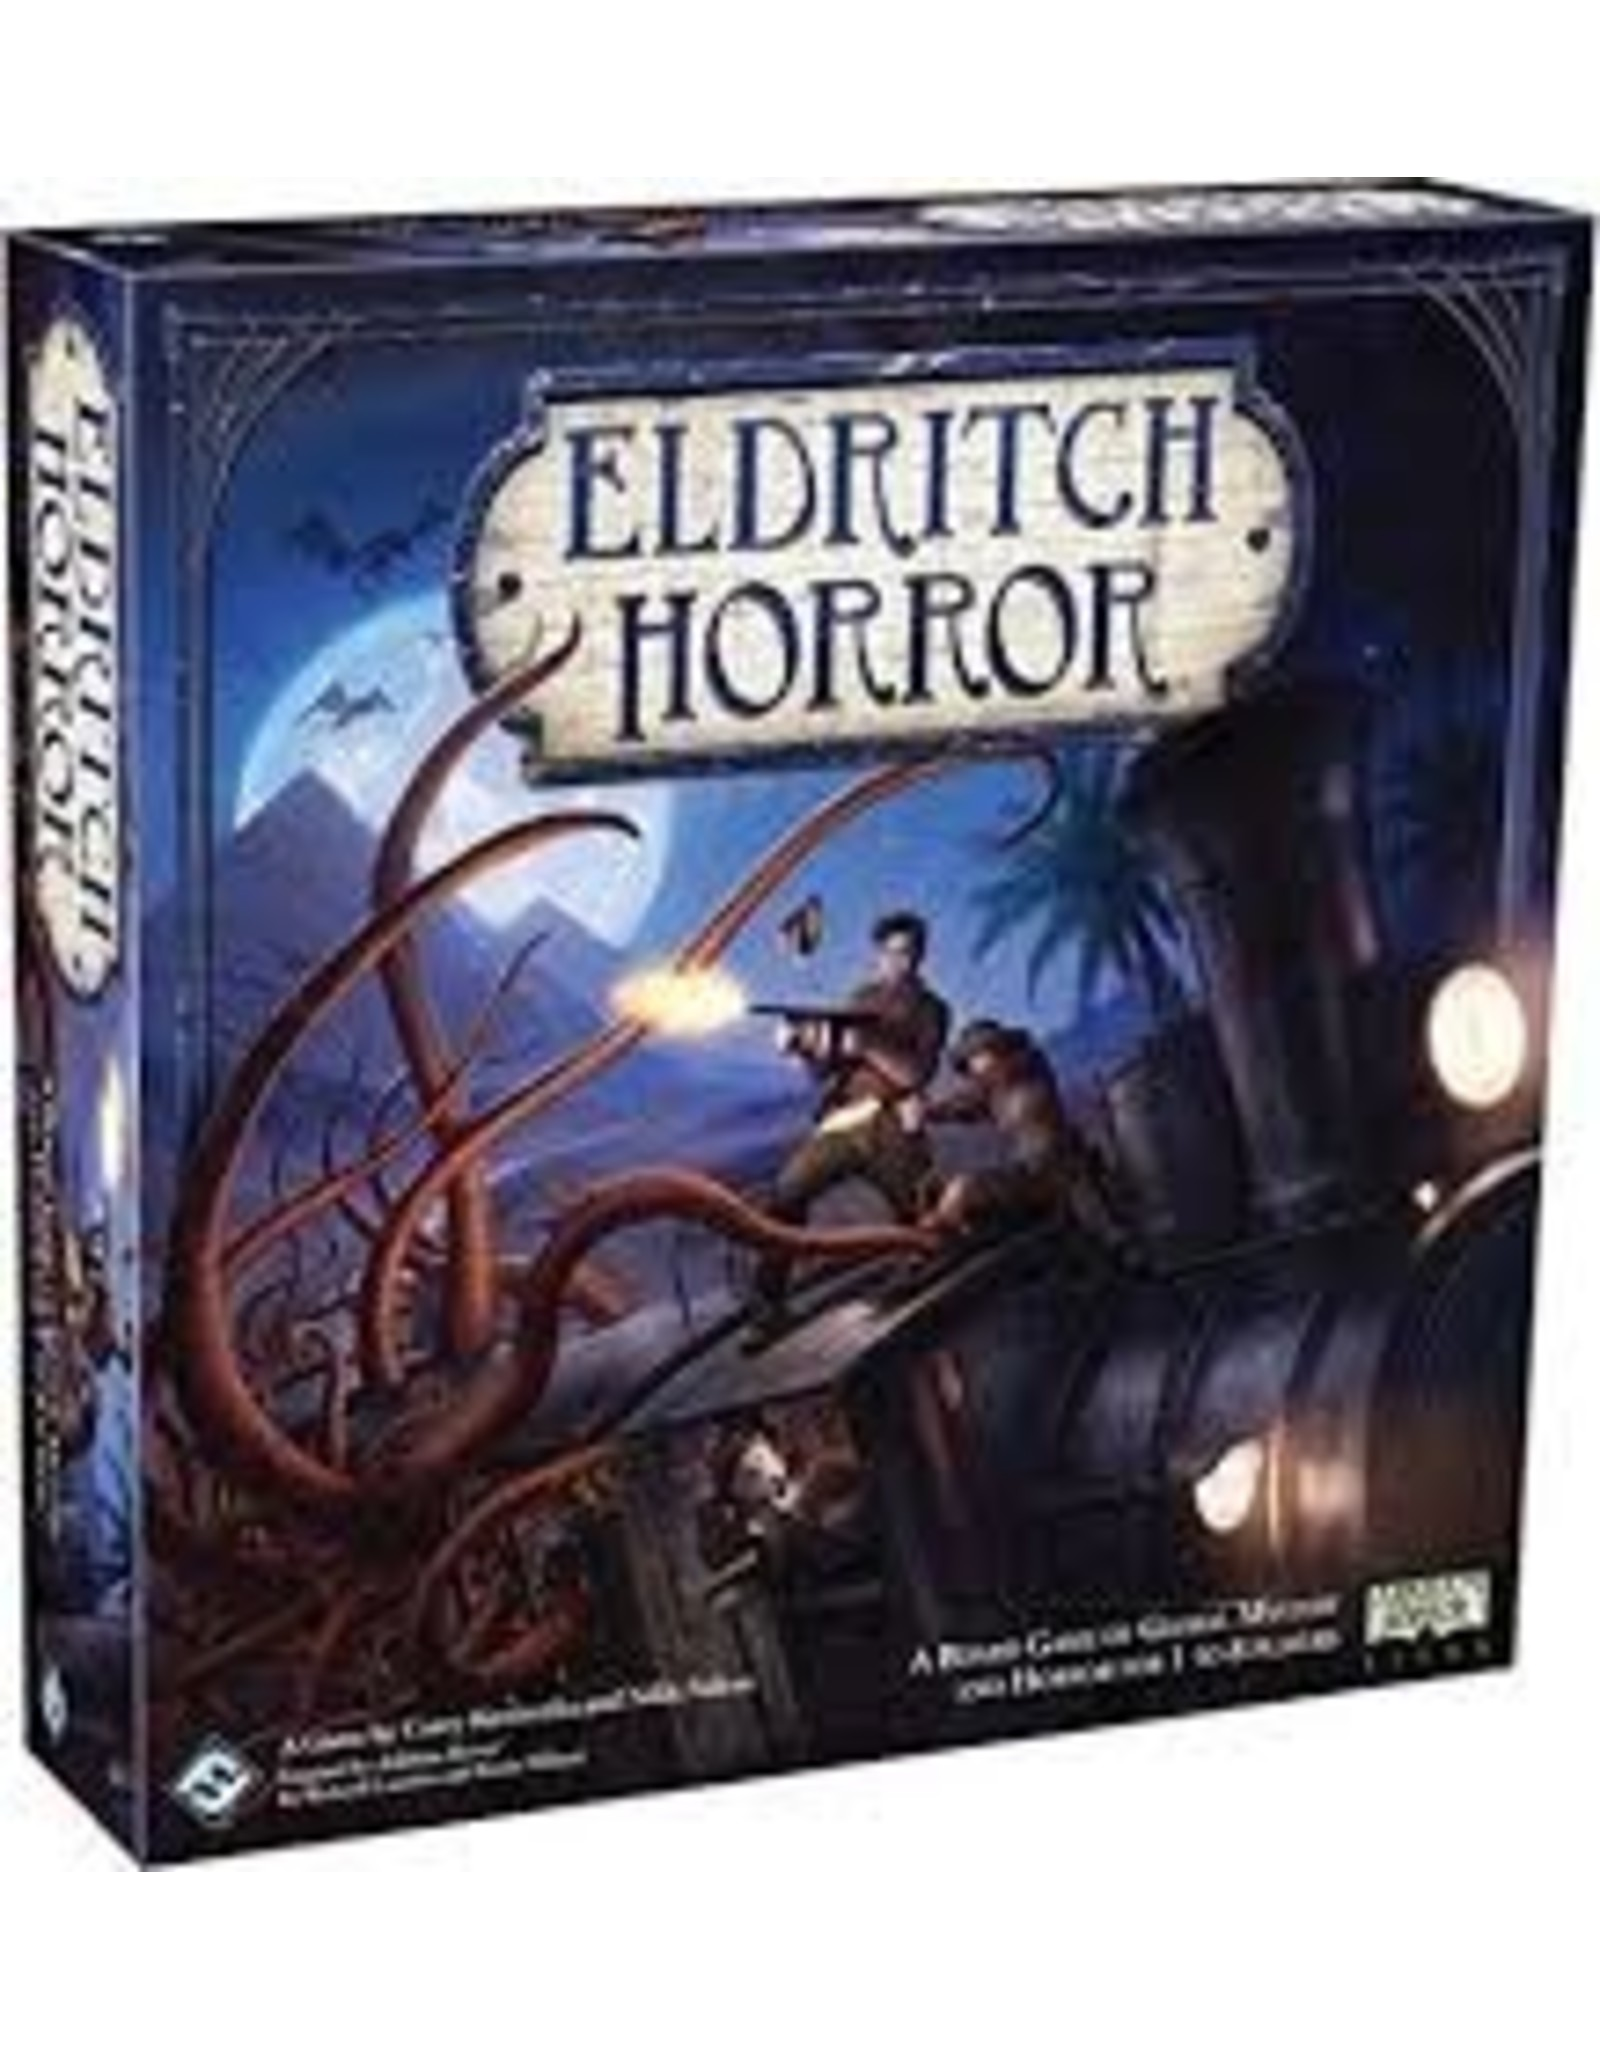 Eldritch Horror